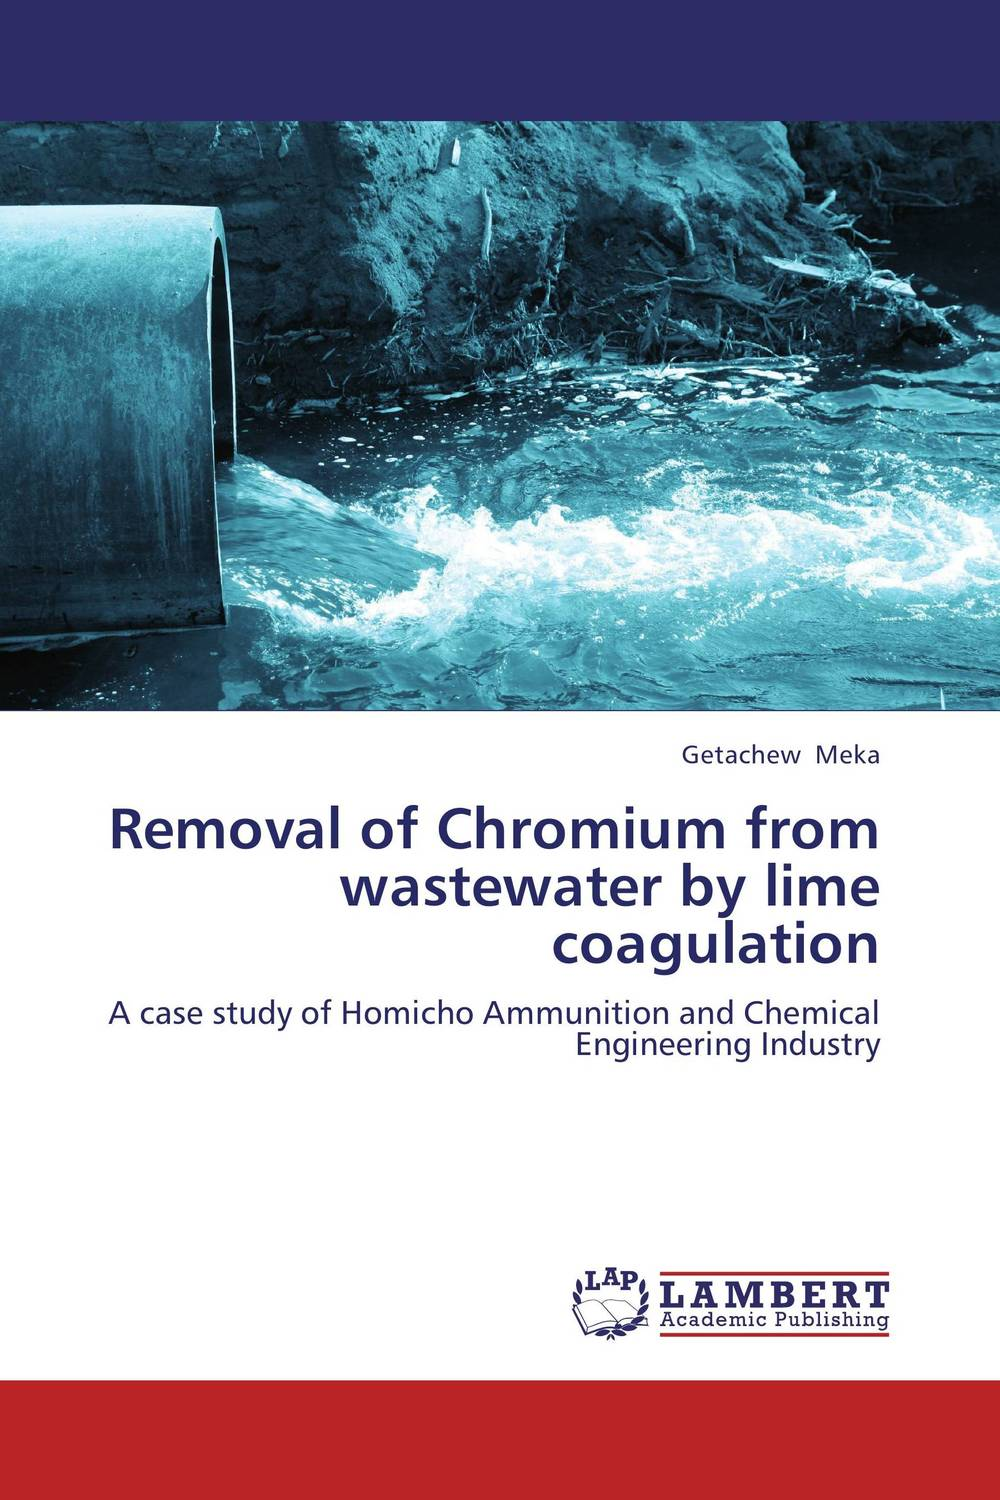 Removal of Chromium from wastewater by lime coagulation analysis fate and removal of pharmaceuticals in the water cycle 50